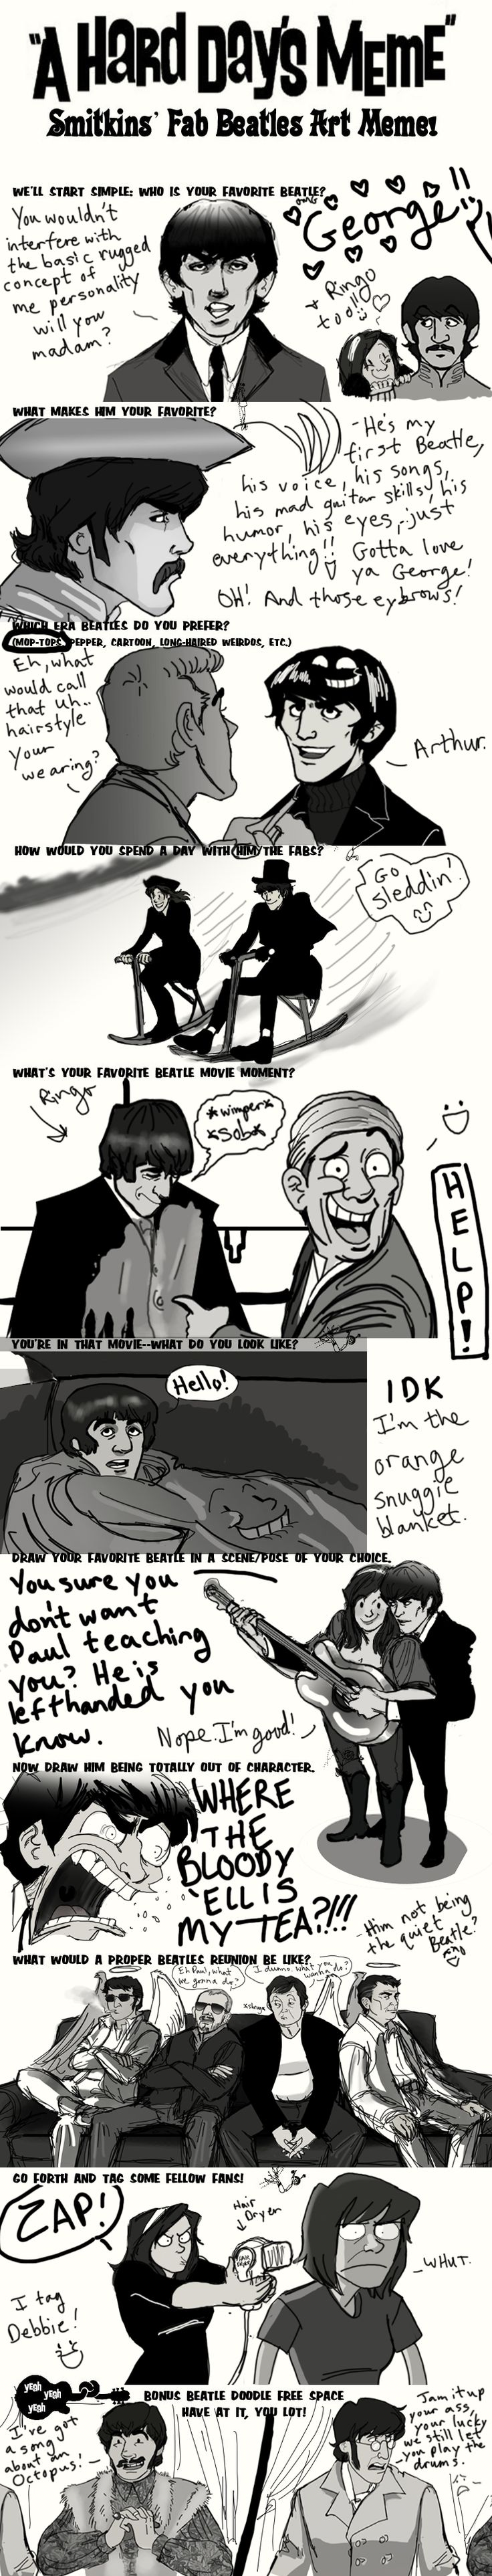 Beatles_Meme_by_TitanicGal1912.png 752×3,935 pixels